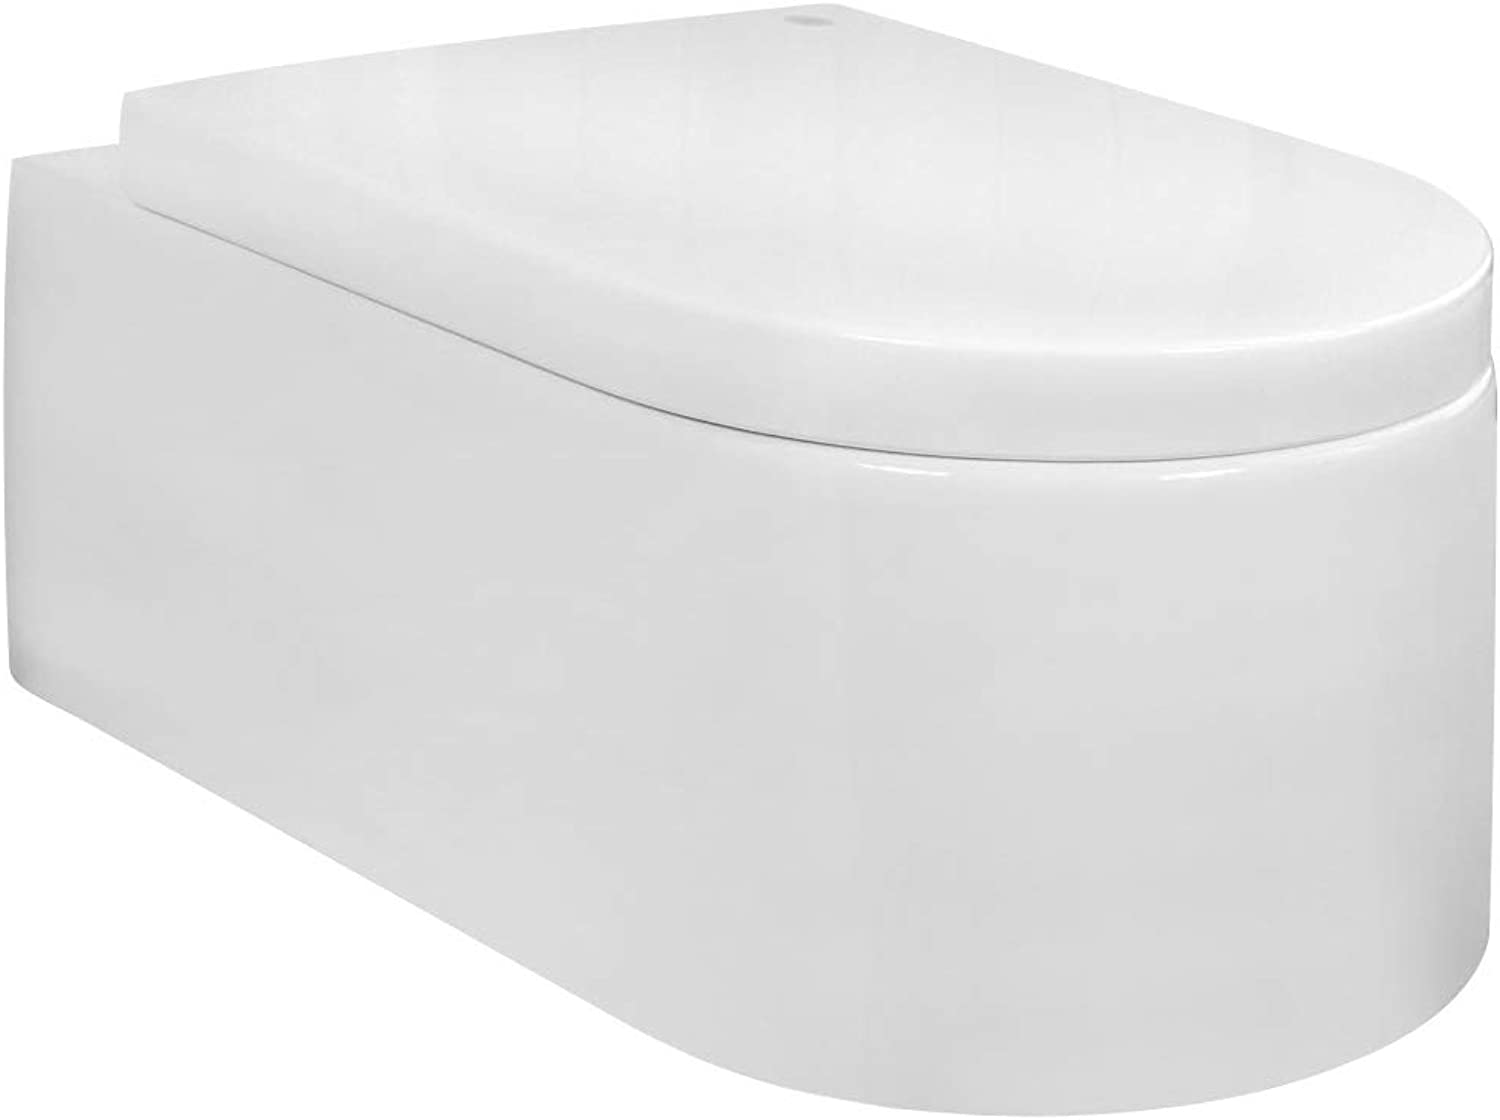 Wall Hung Mounted Toilet Pan Without Rim with Soft Close Seat Toilet Lid Bathroom WC Rectangular Sanlingo